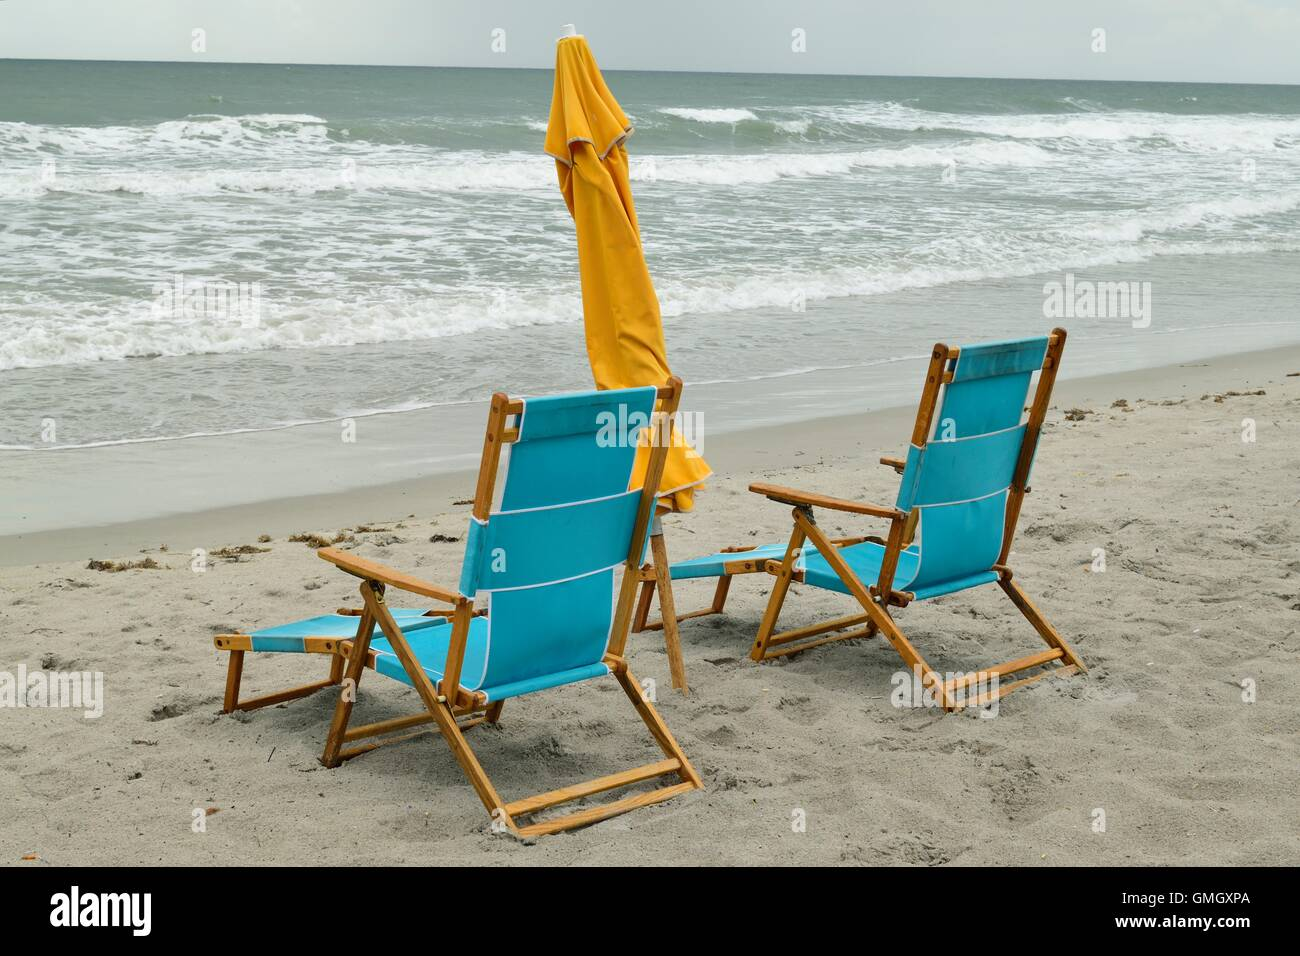 Pair Of Wooden Beach Chairs And Umbrella On Cocoa Beach, Florida